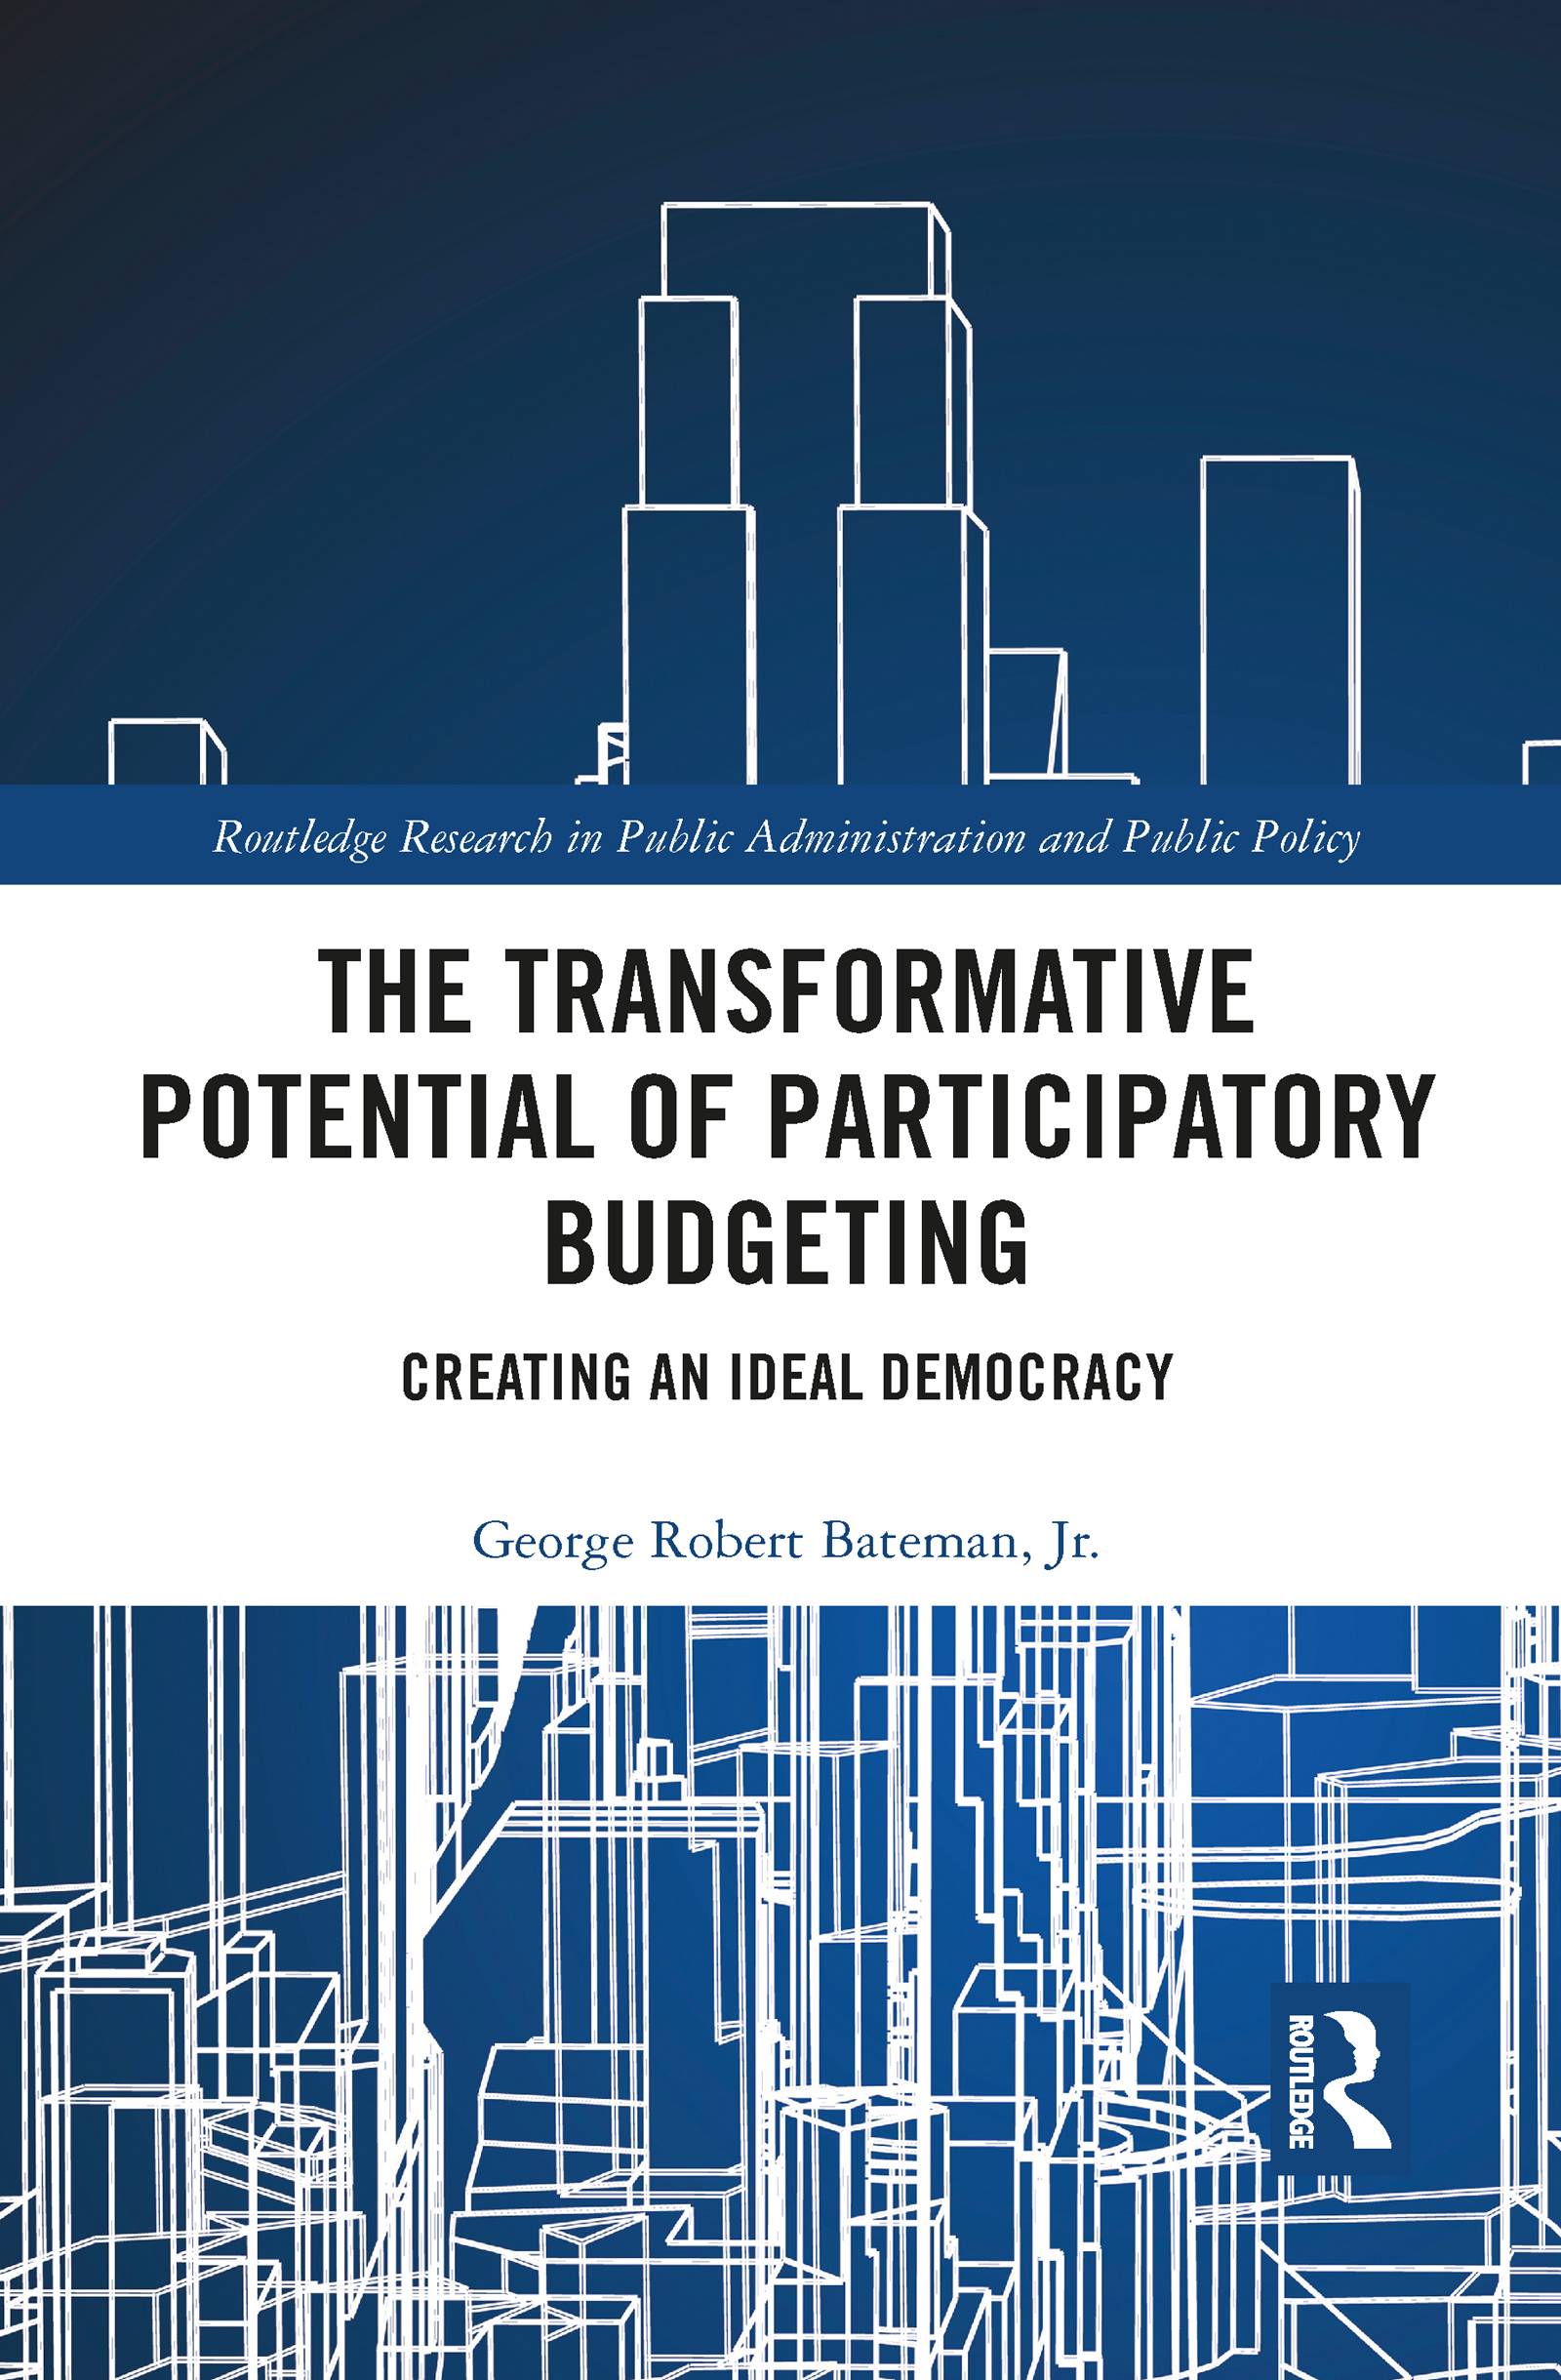 The Transformative Potential of Participatory Budgeting